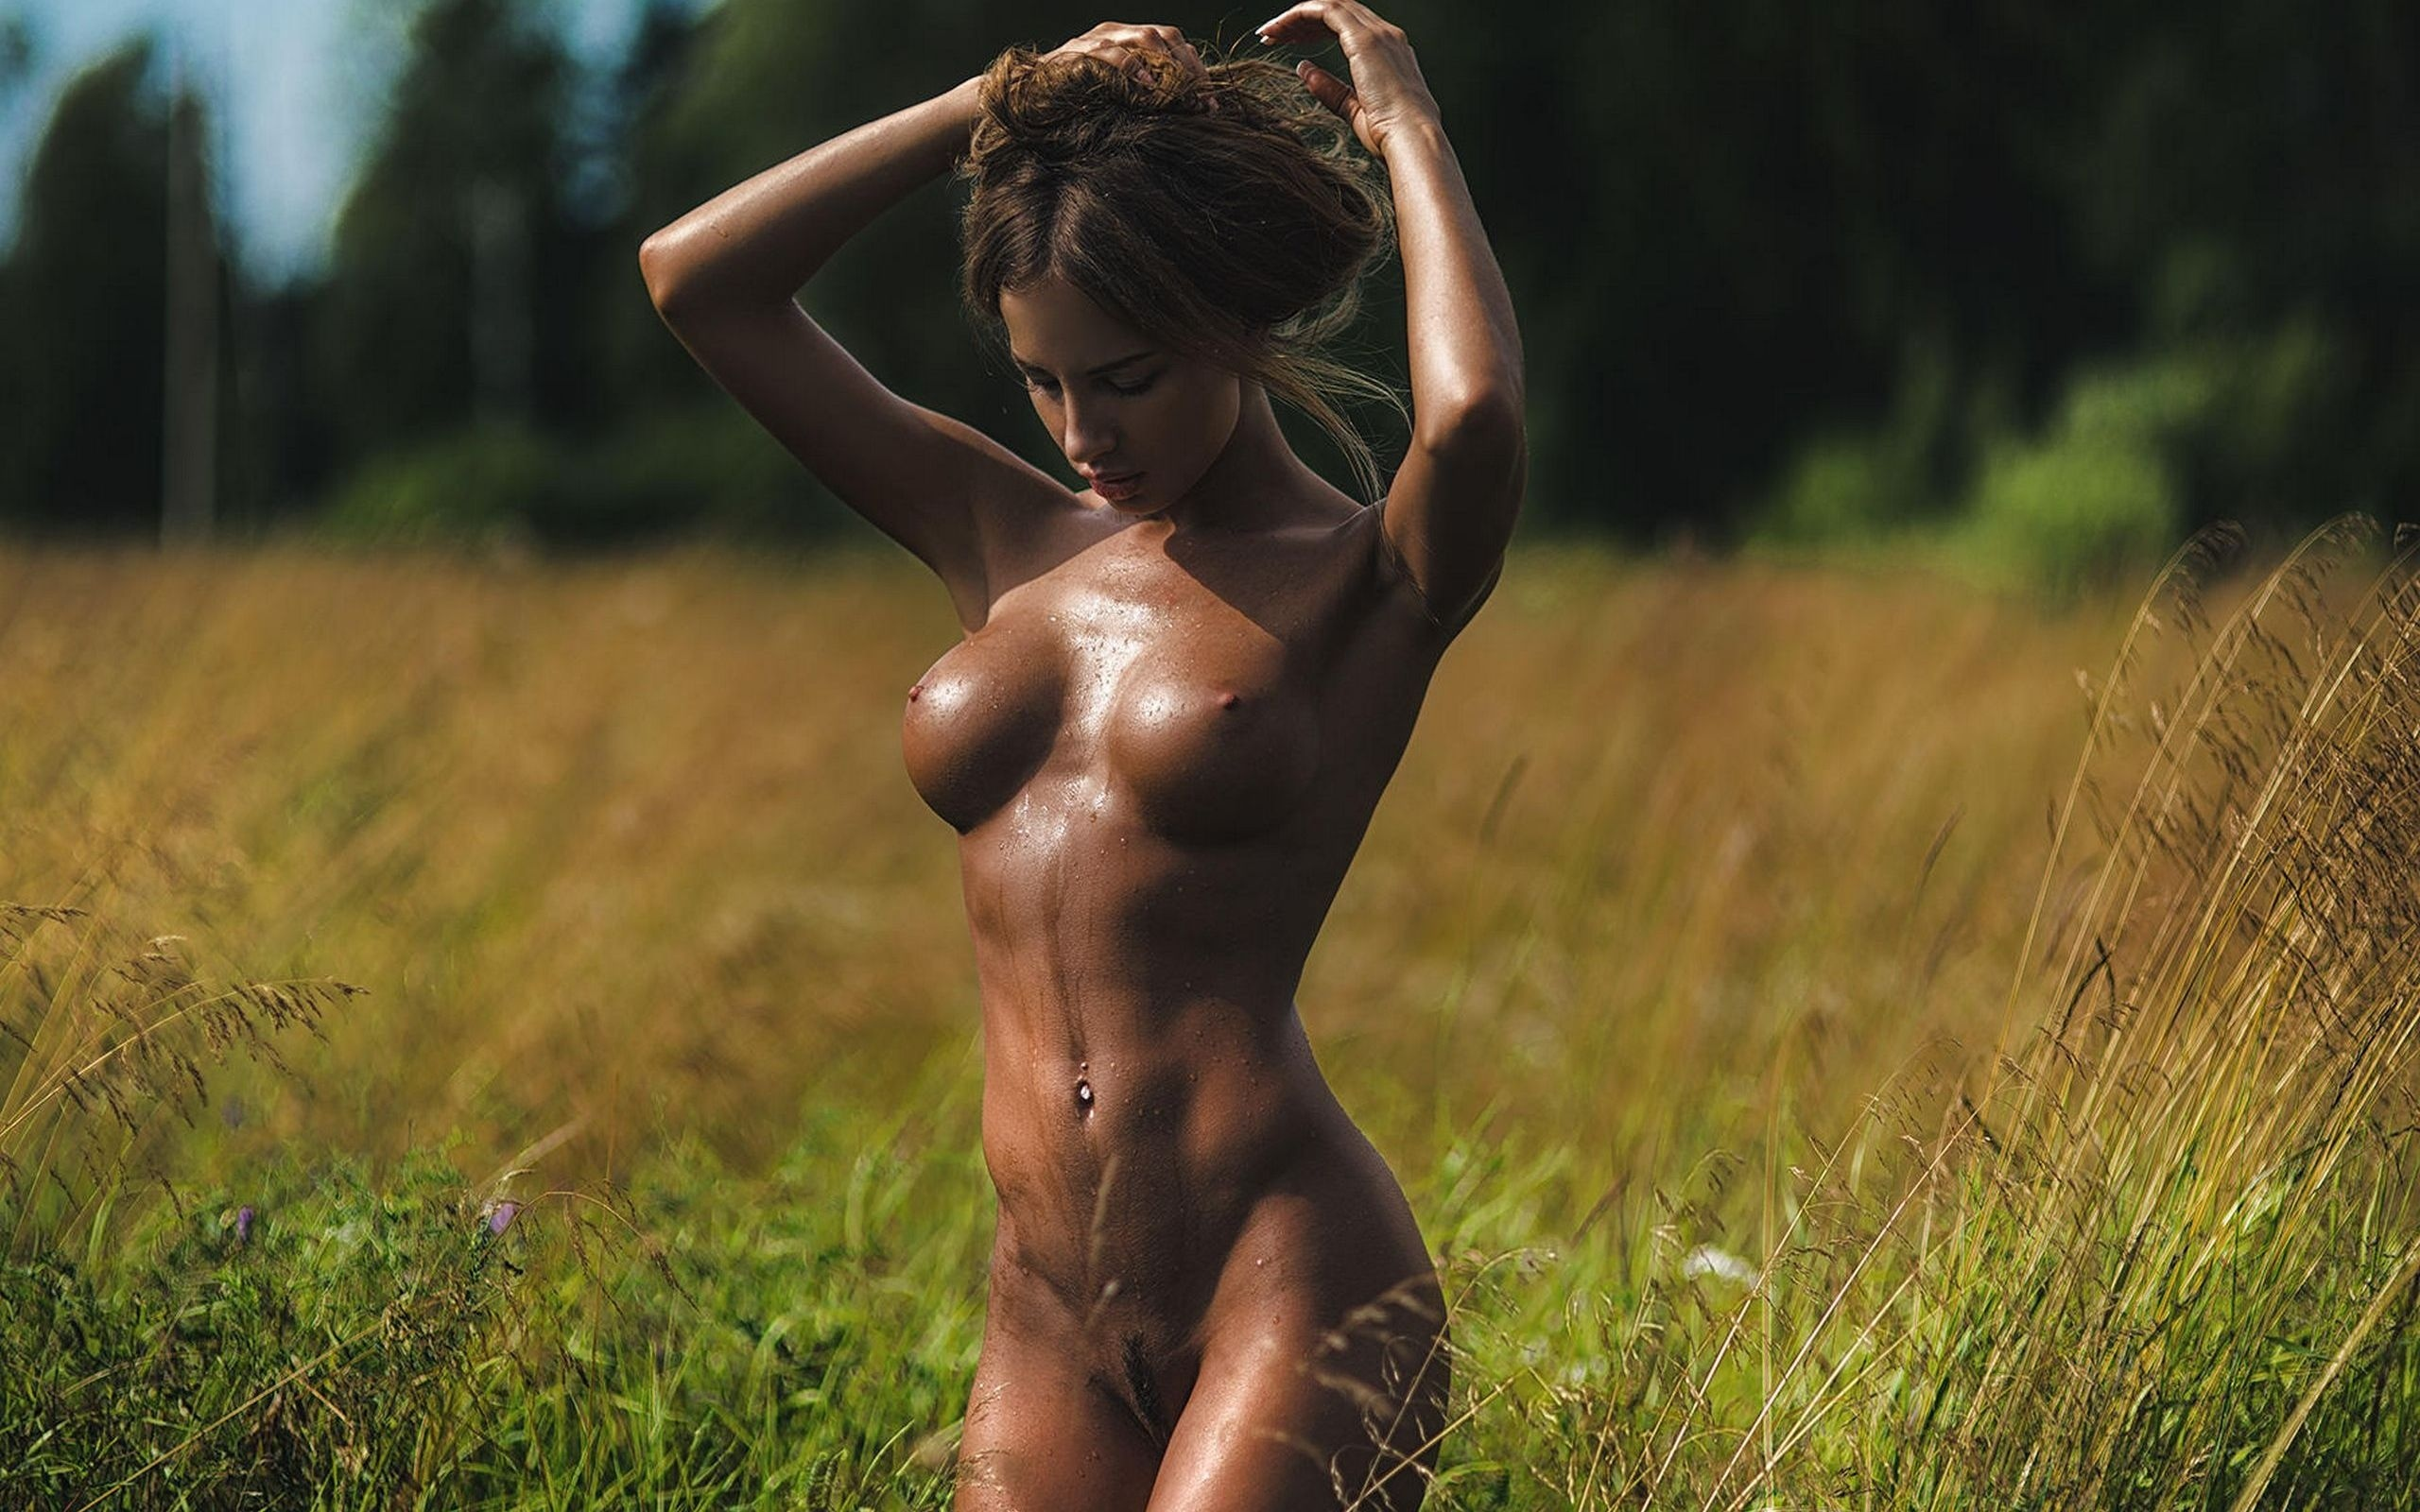 Beautiful nude women photographs 11